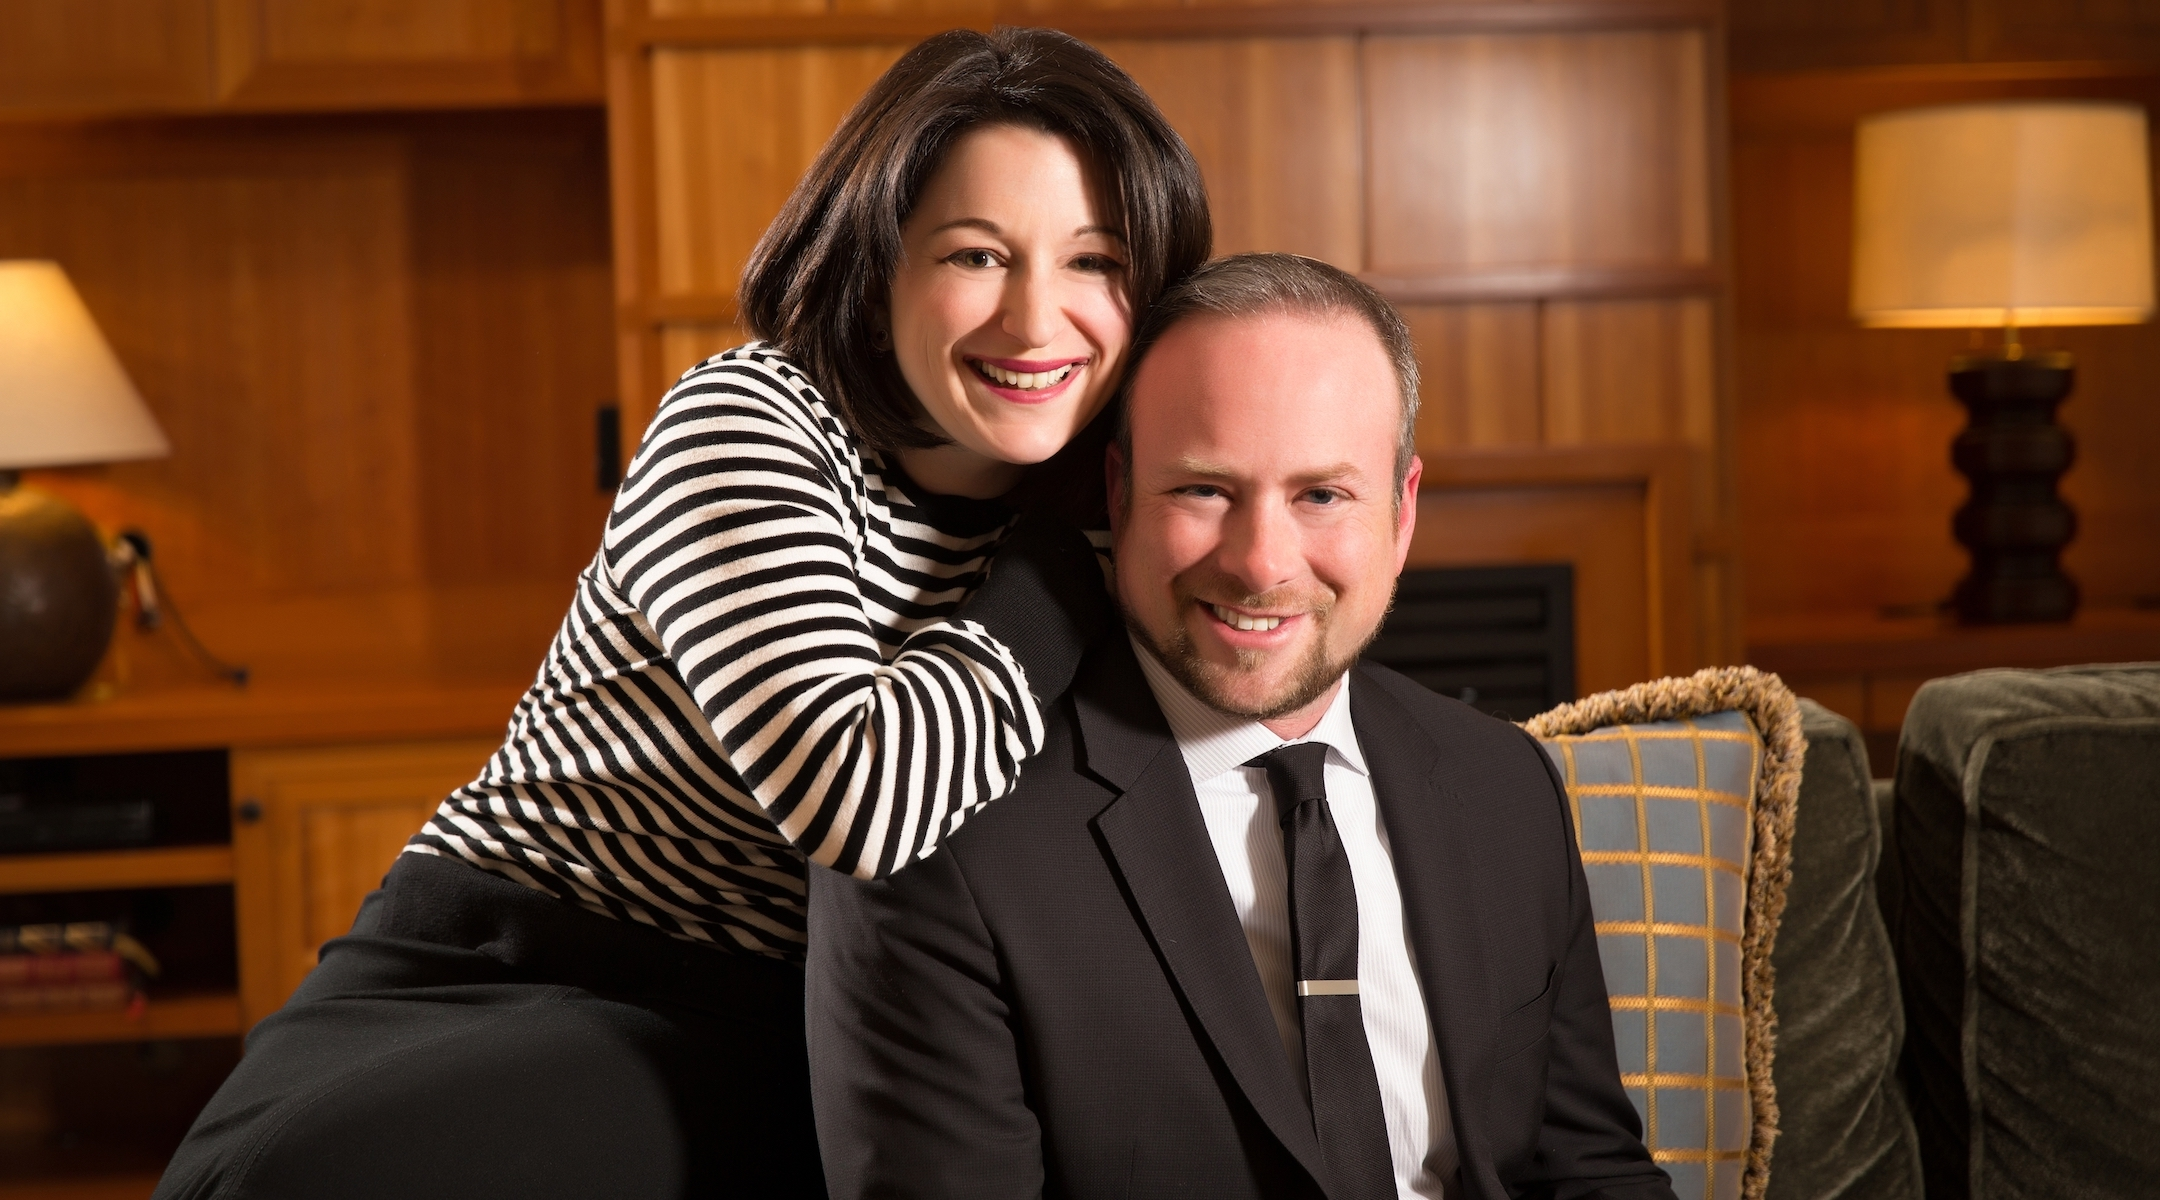 Ari Hoffman, pictured with his wife, Jessica Russak-Hoffman, was inspired to run for Seattle City Council after protesting vandalism and drug use in his synagogue's cemetery. (Courtesy of Hoffman)